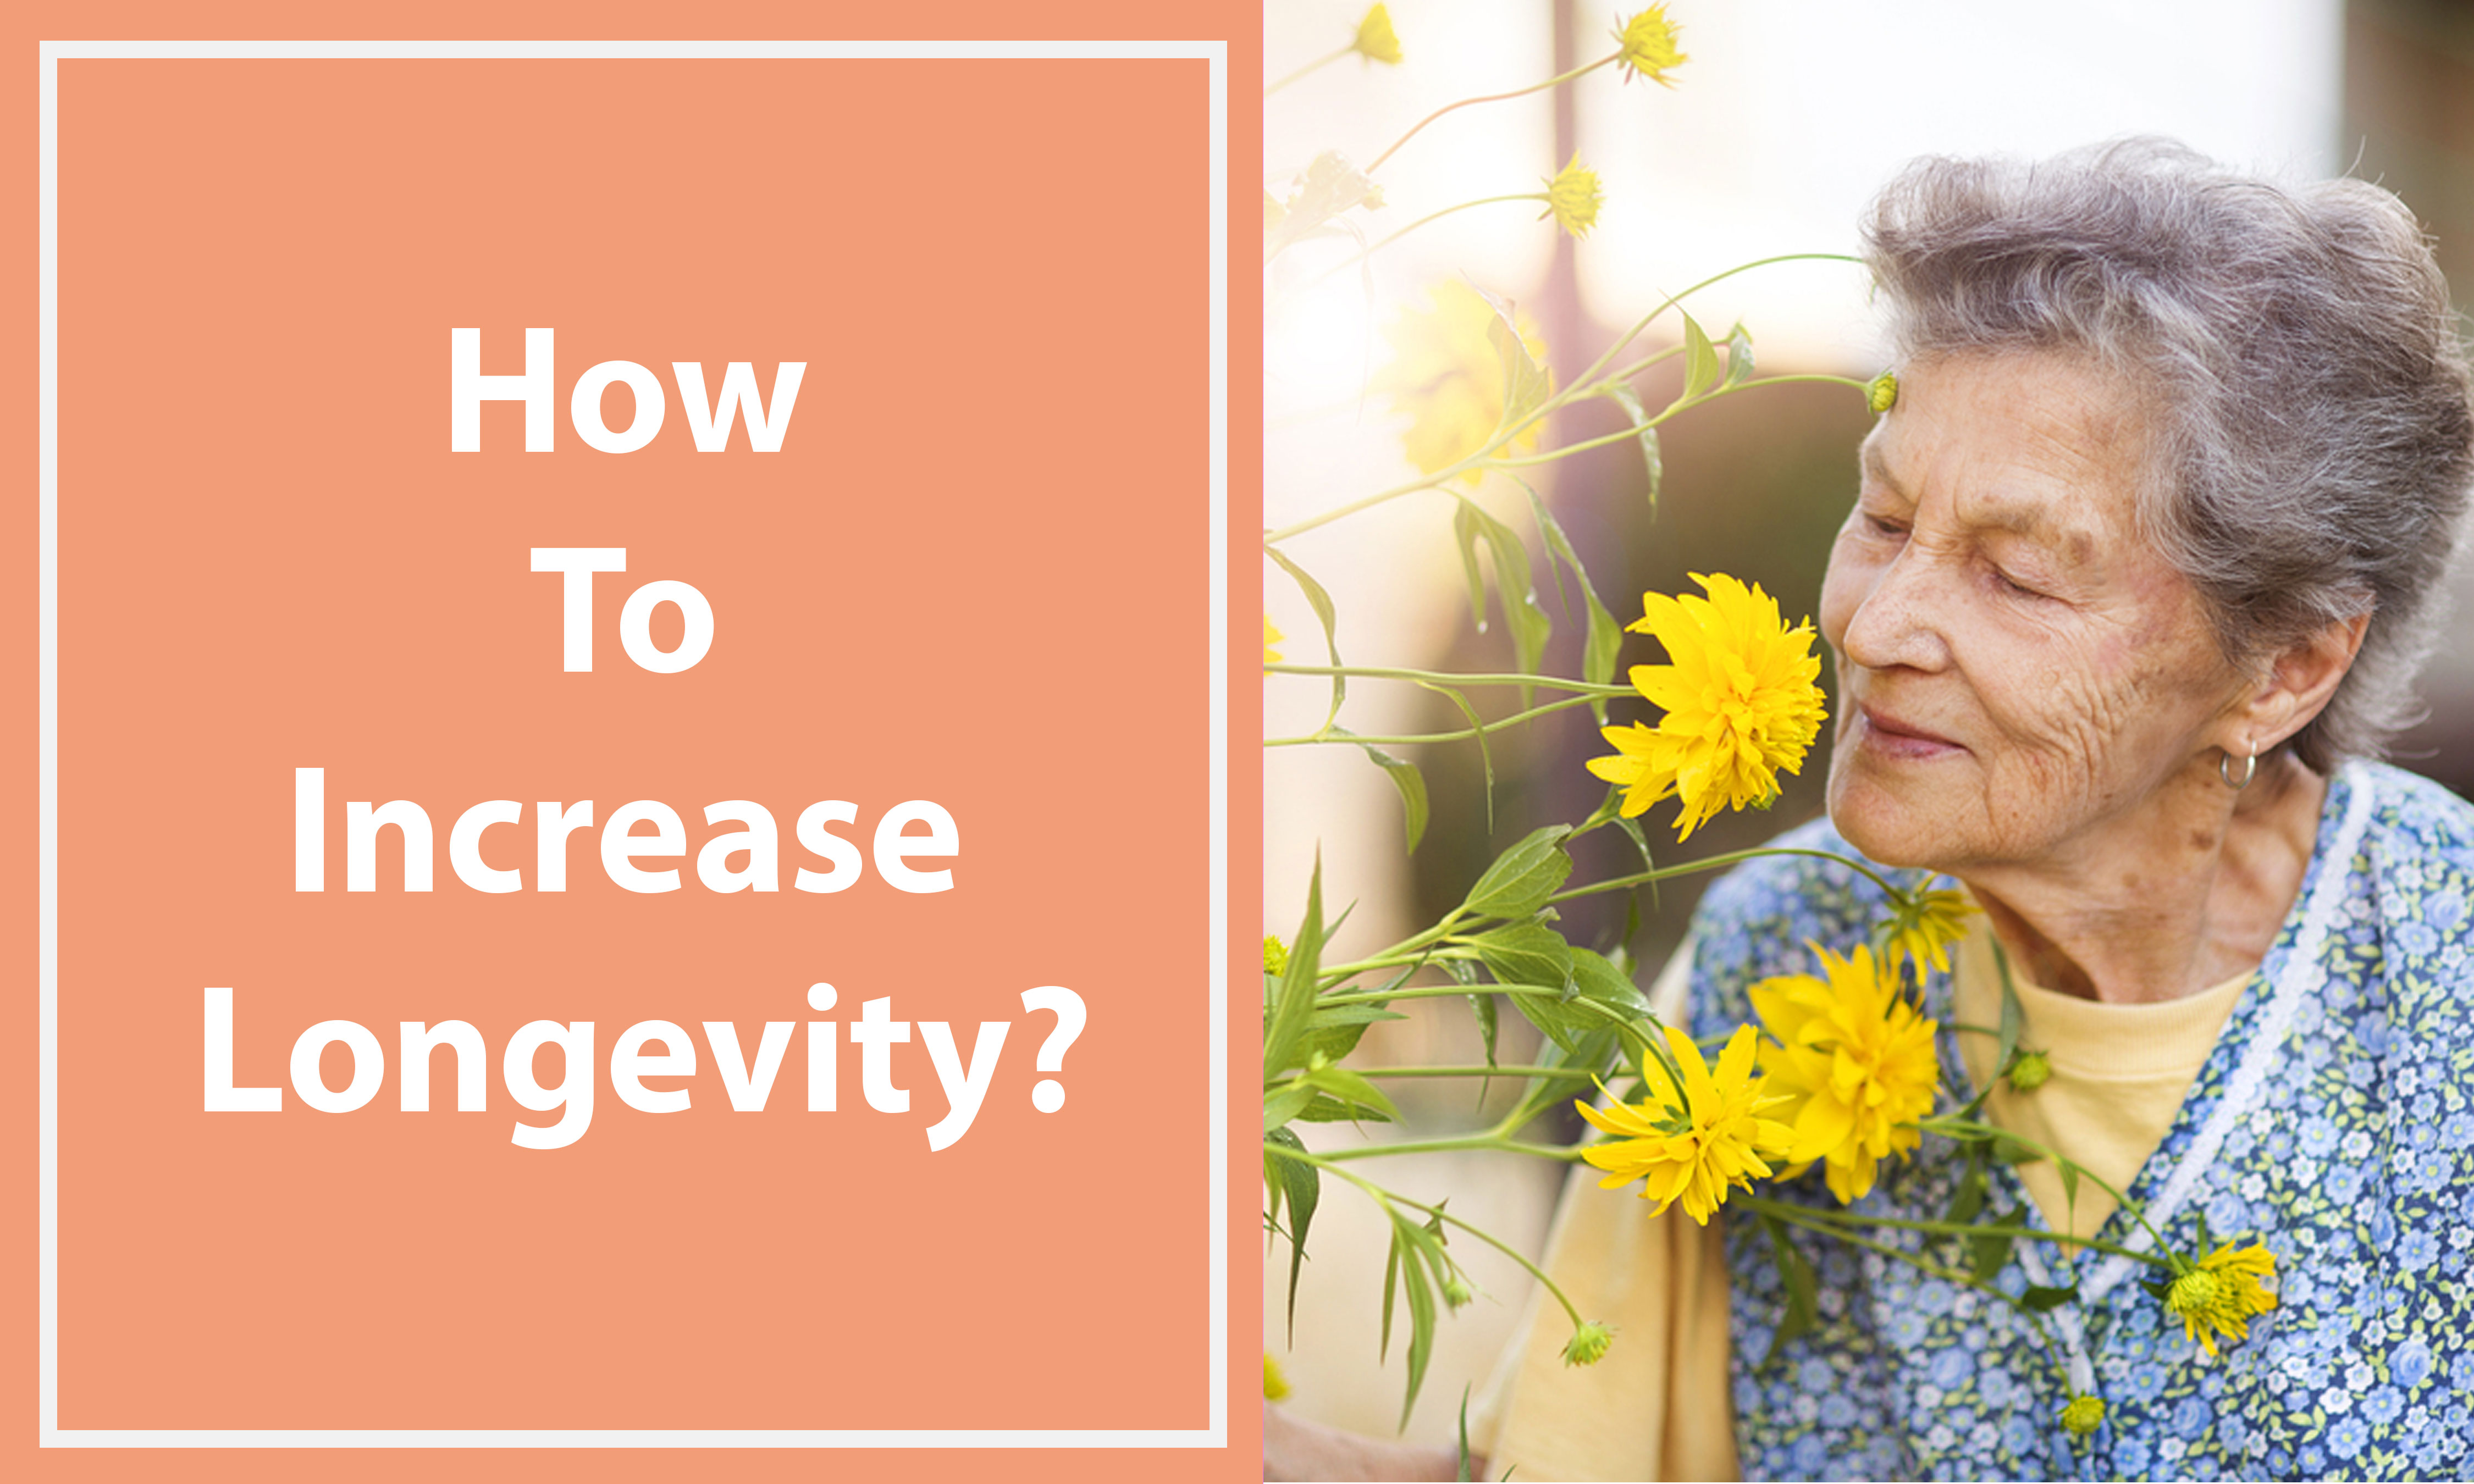 How-to-increase-longevity